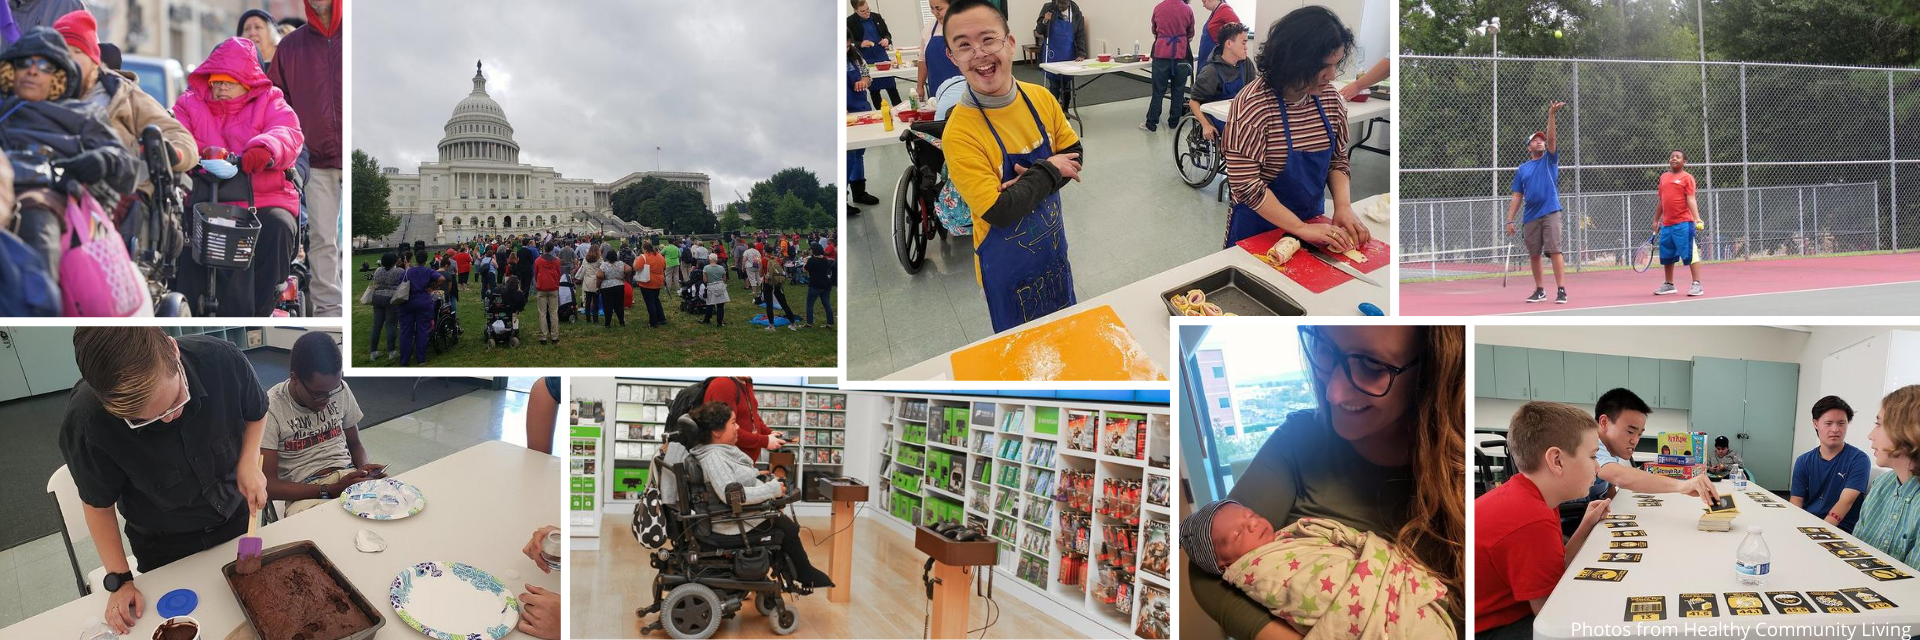 A collage of photos showing various individuals with disabilities enjoying various activities.